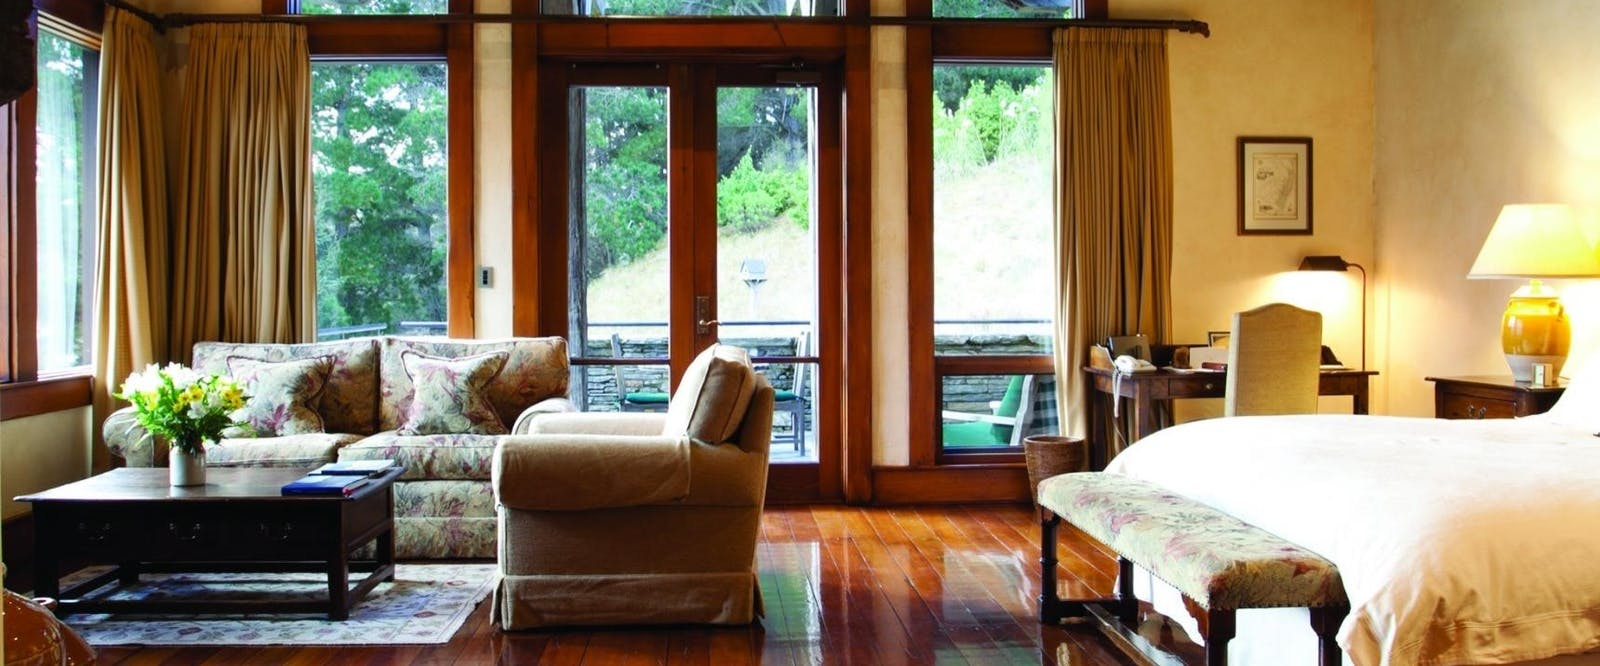 Lodge Room at Blanket Bay, Glenorchy